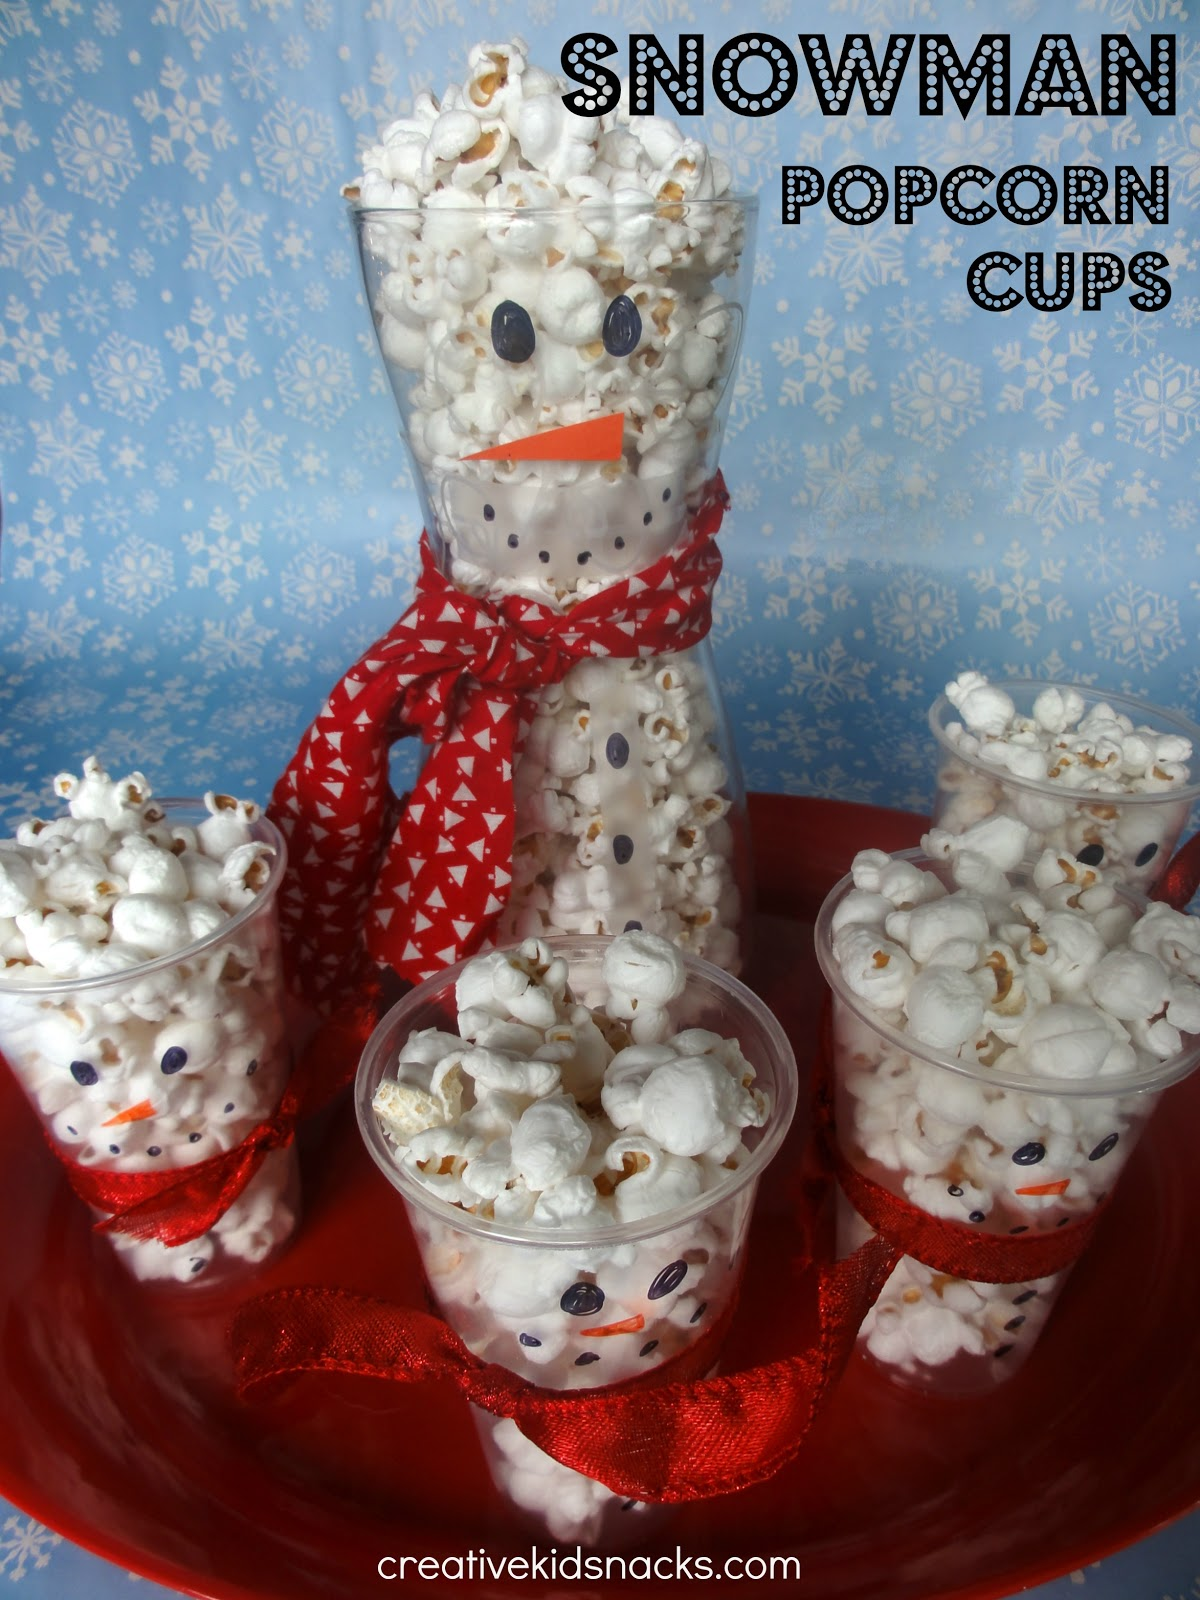 I Hope You Enjoy Creating Your Own Snowman Popcorn Cups Be Creative With Your Supplies And Show Me What You Came Up Id Love A Link To A Photo In The